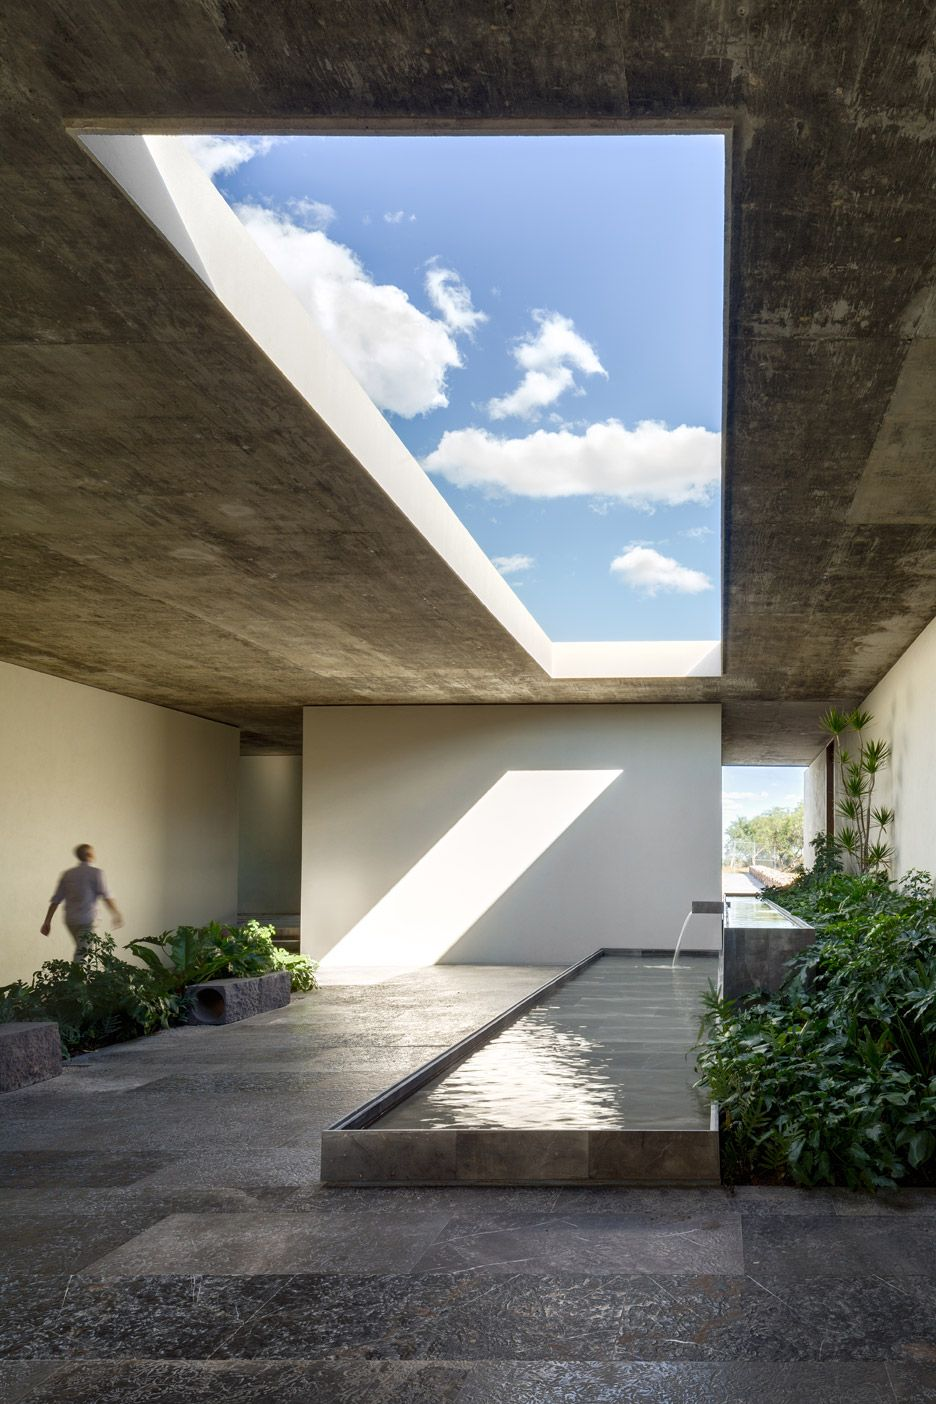 Next Vegetales Hydroponic Plant By Cc Arquitectos In Leon Mexico